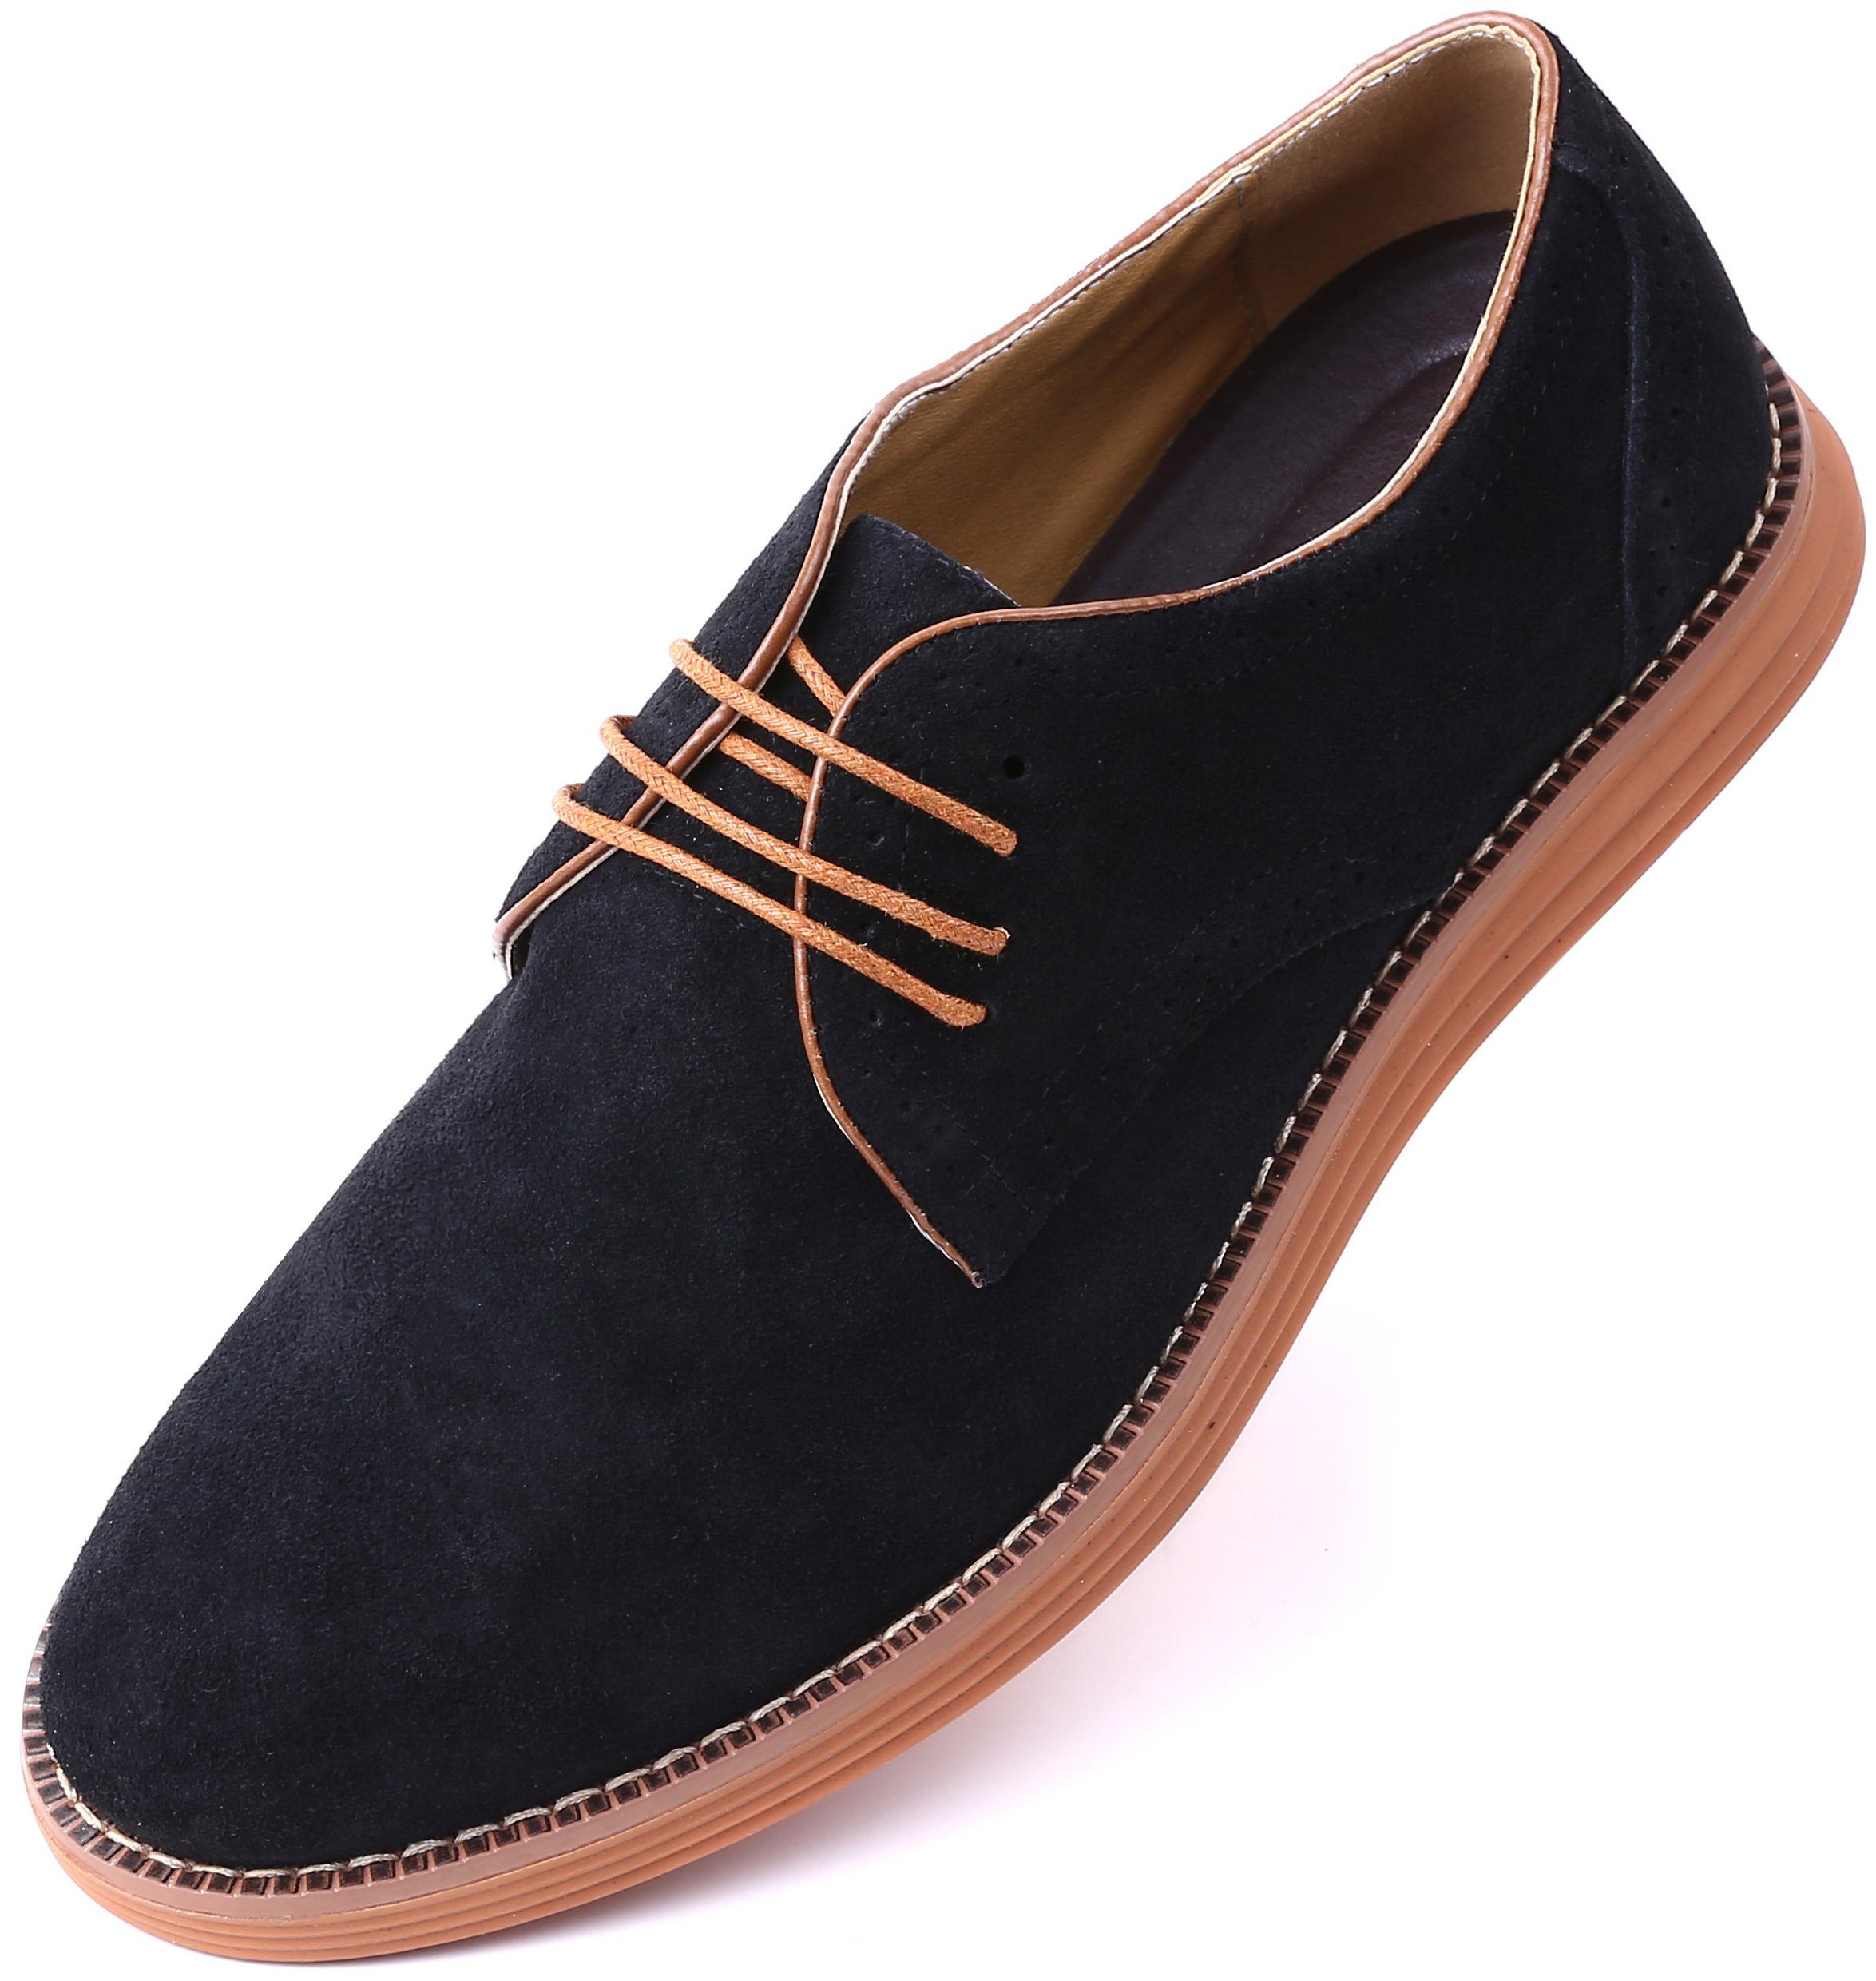 Marino Suede Oxford Dress Shoes for Men - Business Casual Shoes (Mid Night Black - 11 D(M) US)